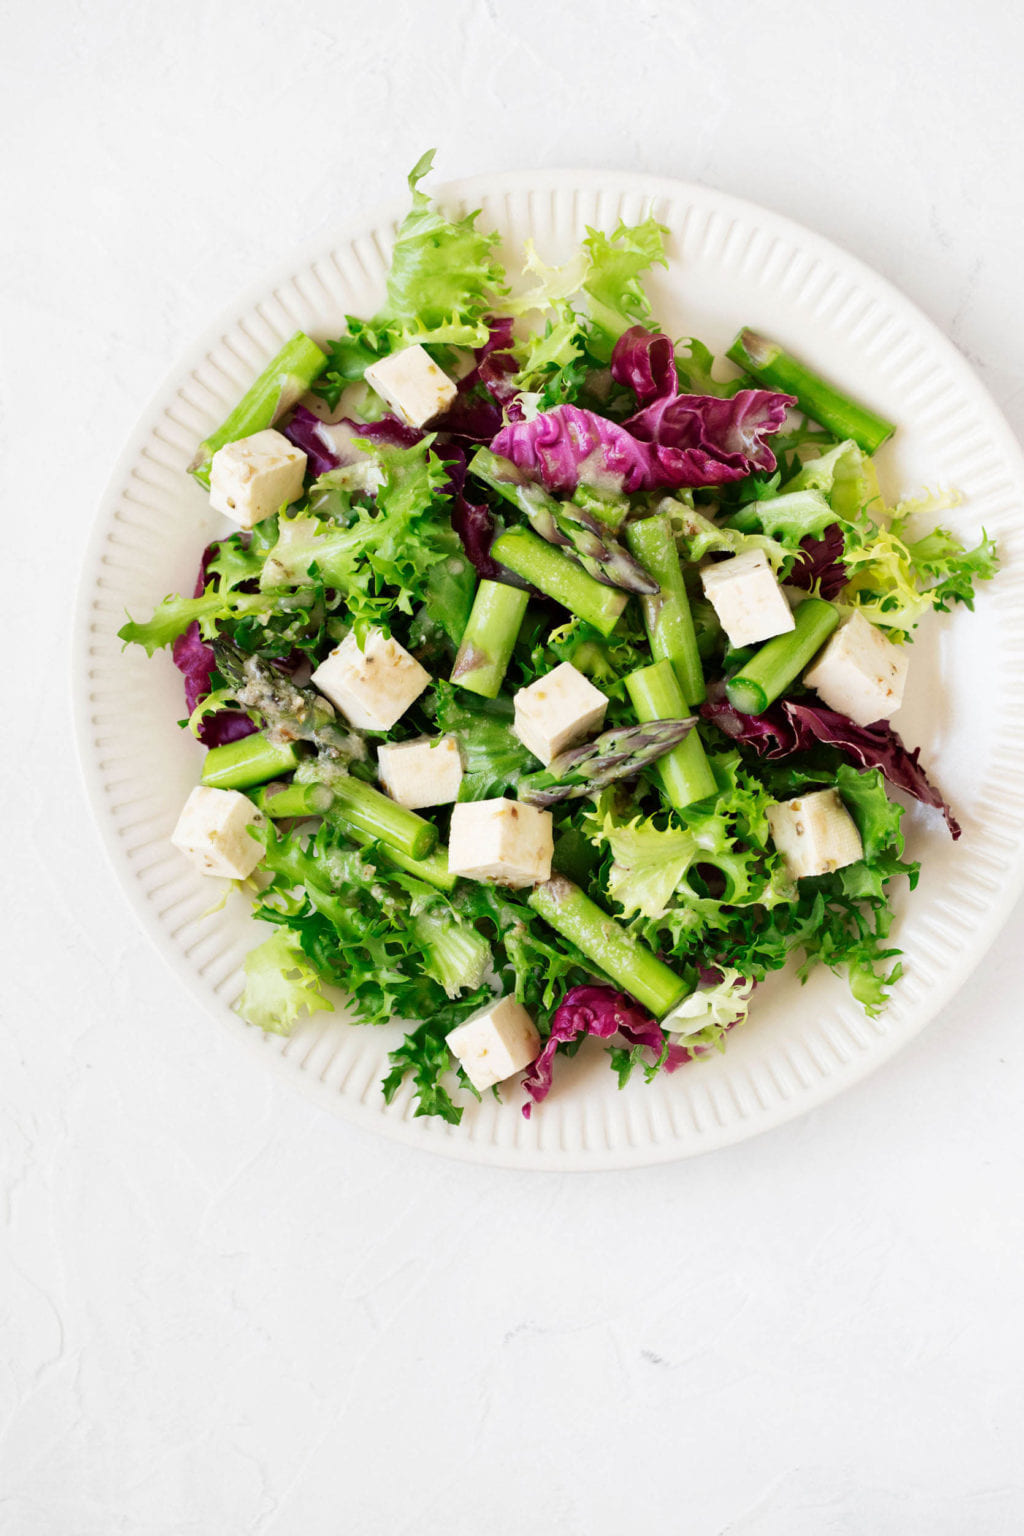 A bright, vibrant spring salad is served on a white, fluted ceramic plate. A marinated tofu mixture is part of the salad.